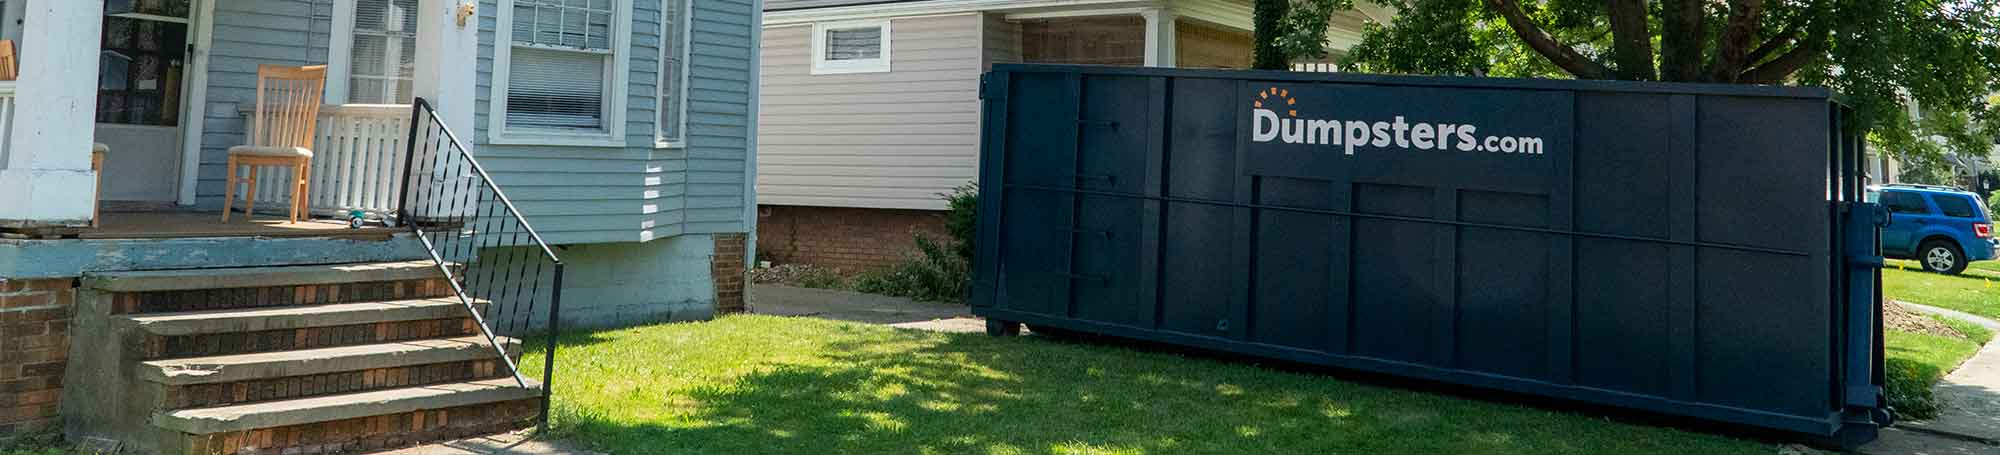 40 Yard Roll Off Dumpster in Driveway Next to a Blue House.